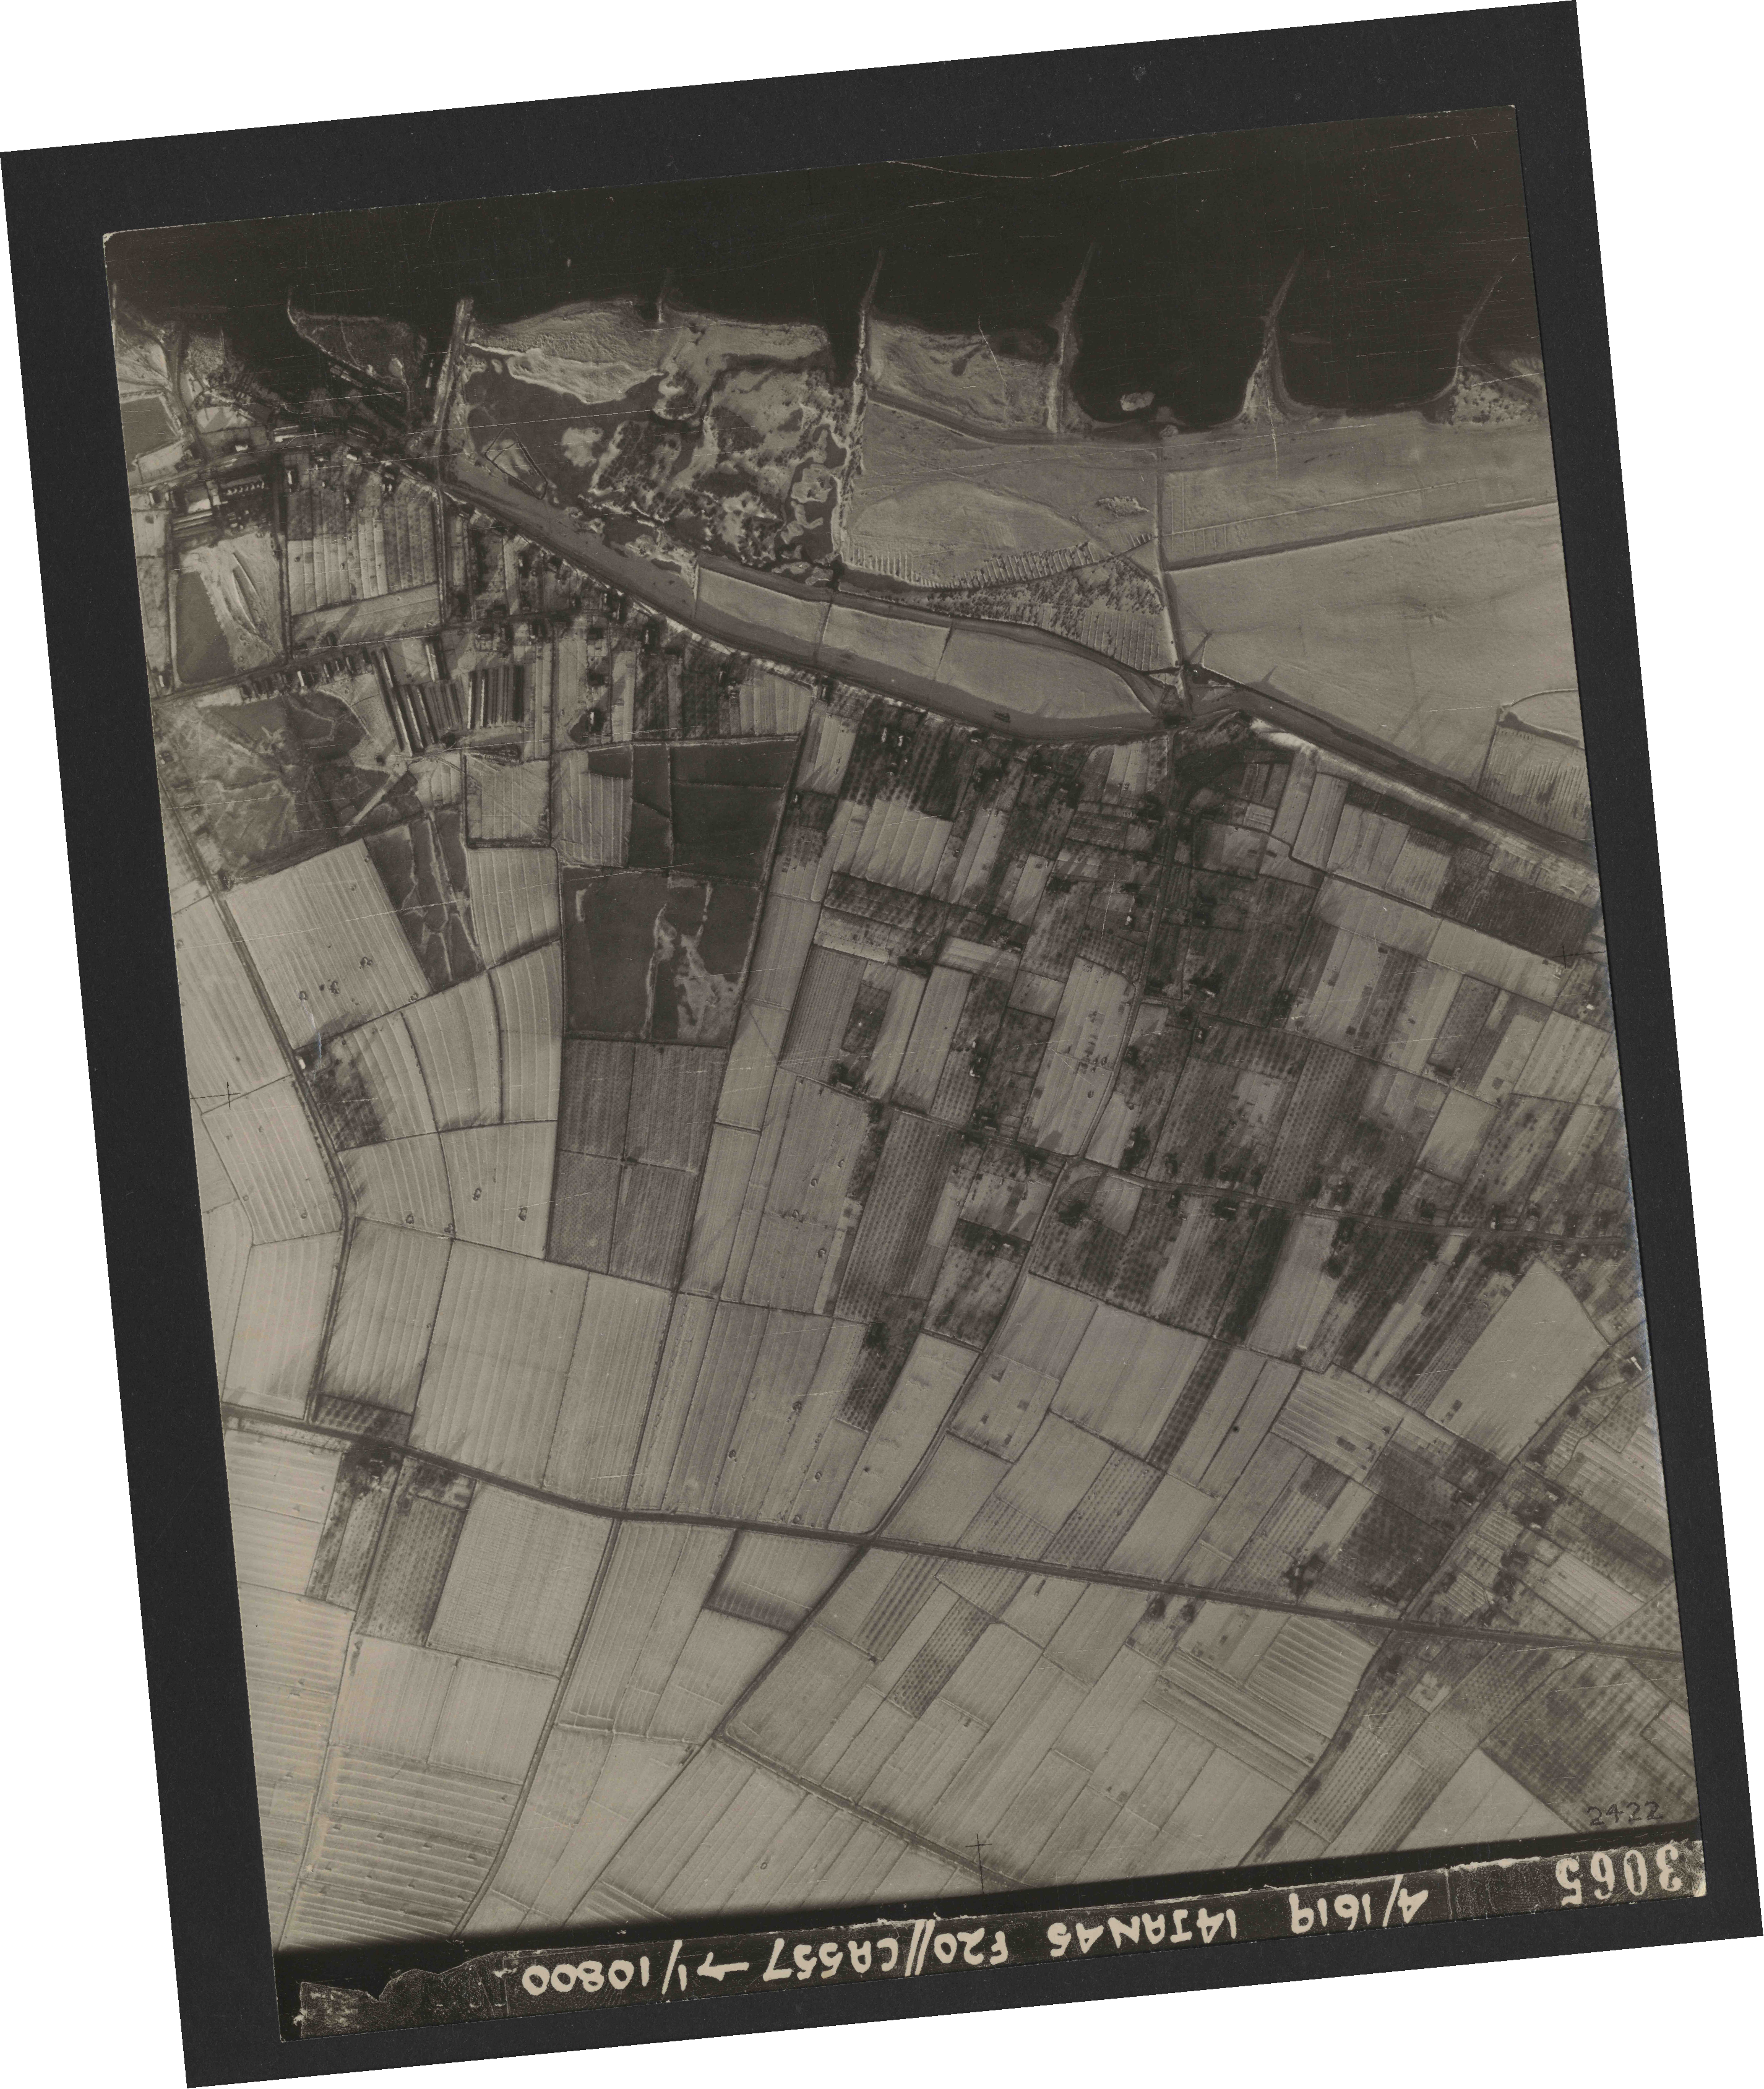 Collection RAF aerial photos 1940-1945 - flight 291, run 04, photo 3065